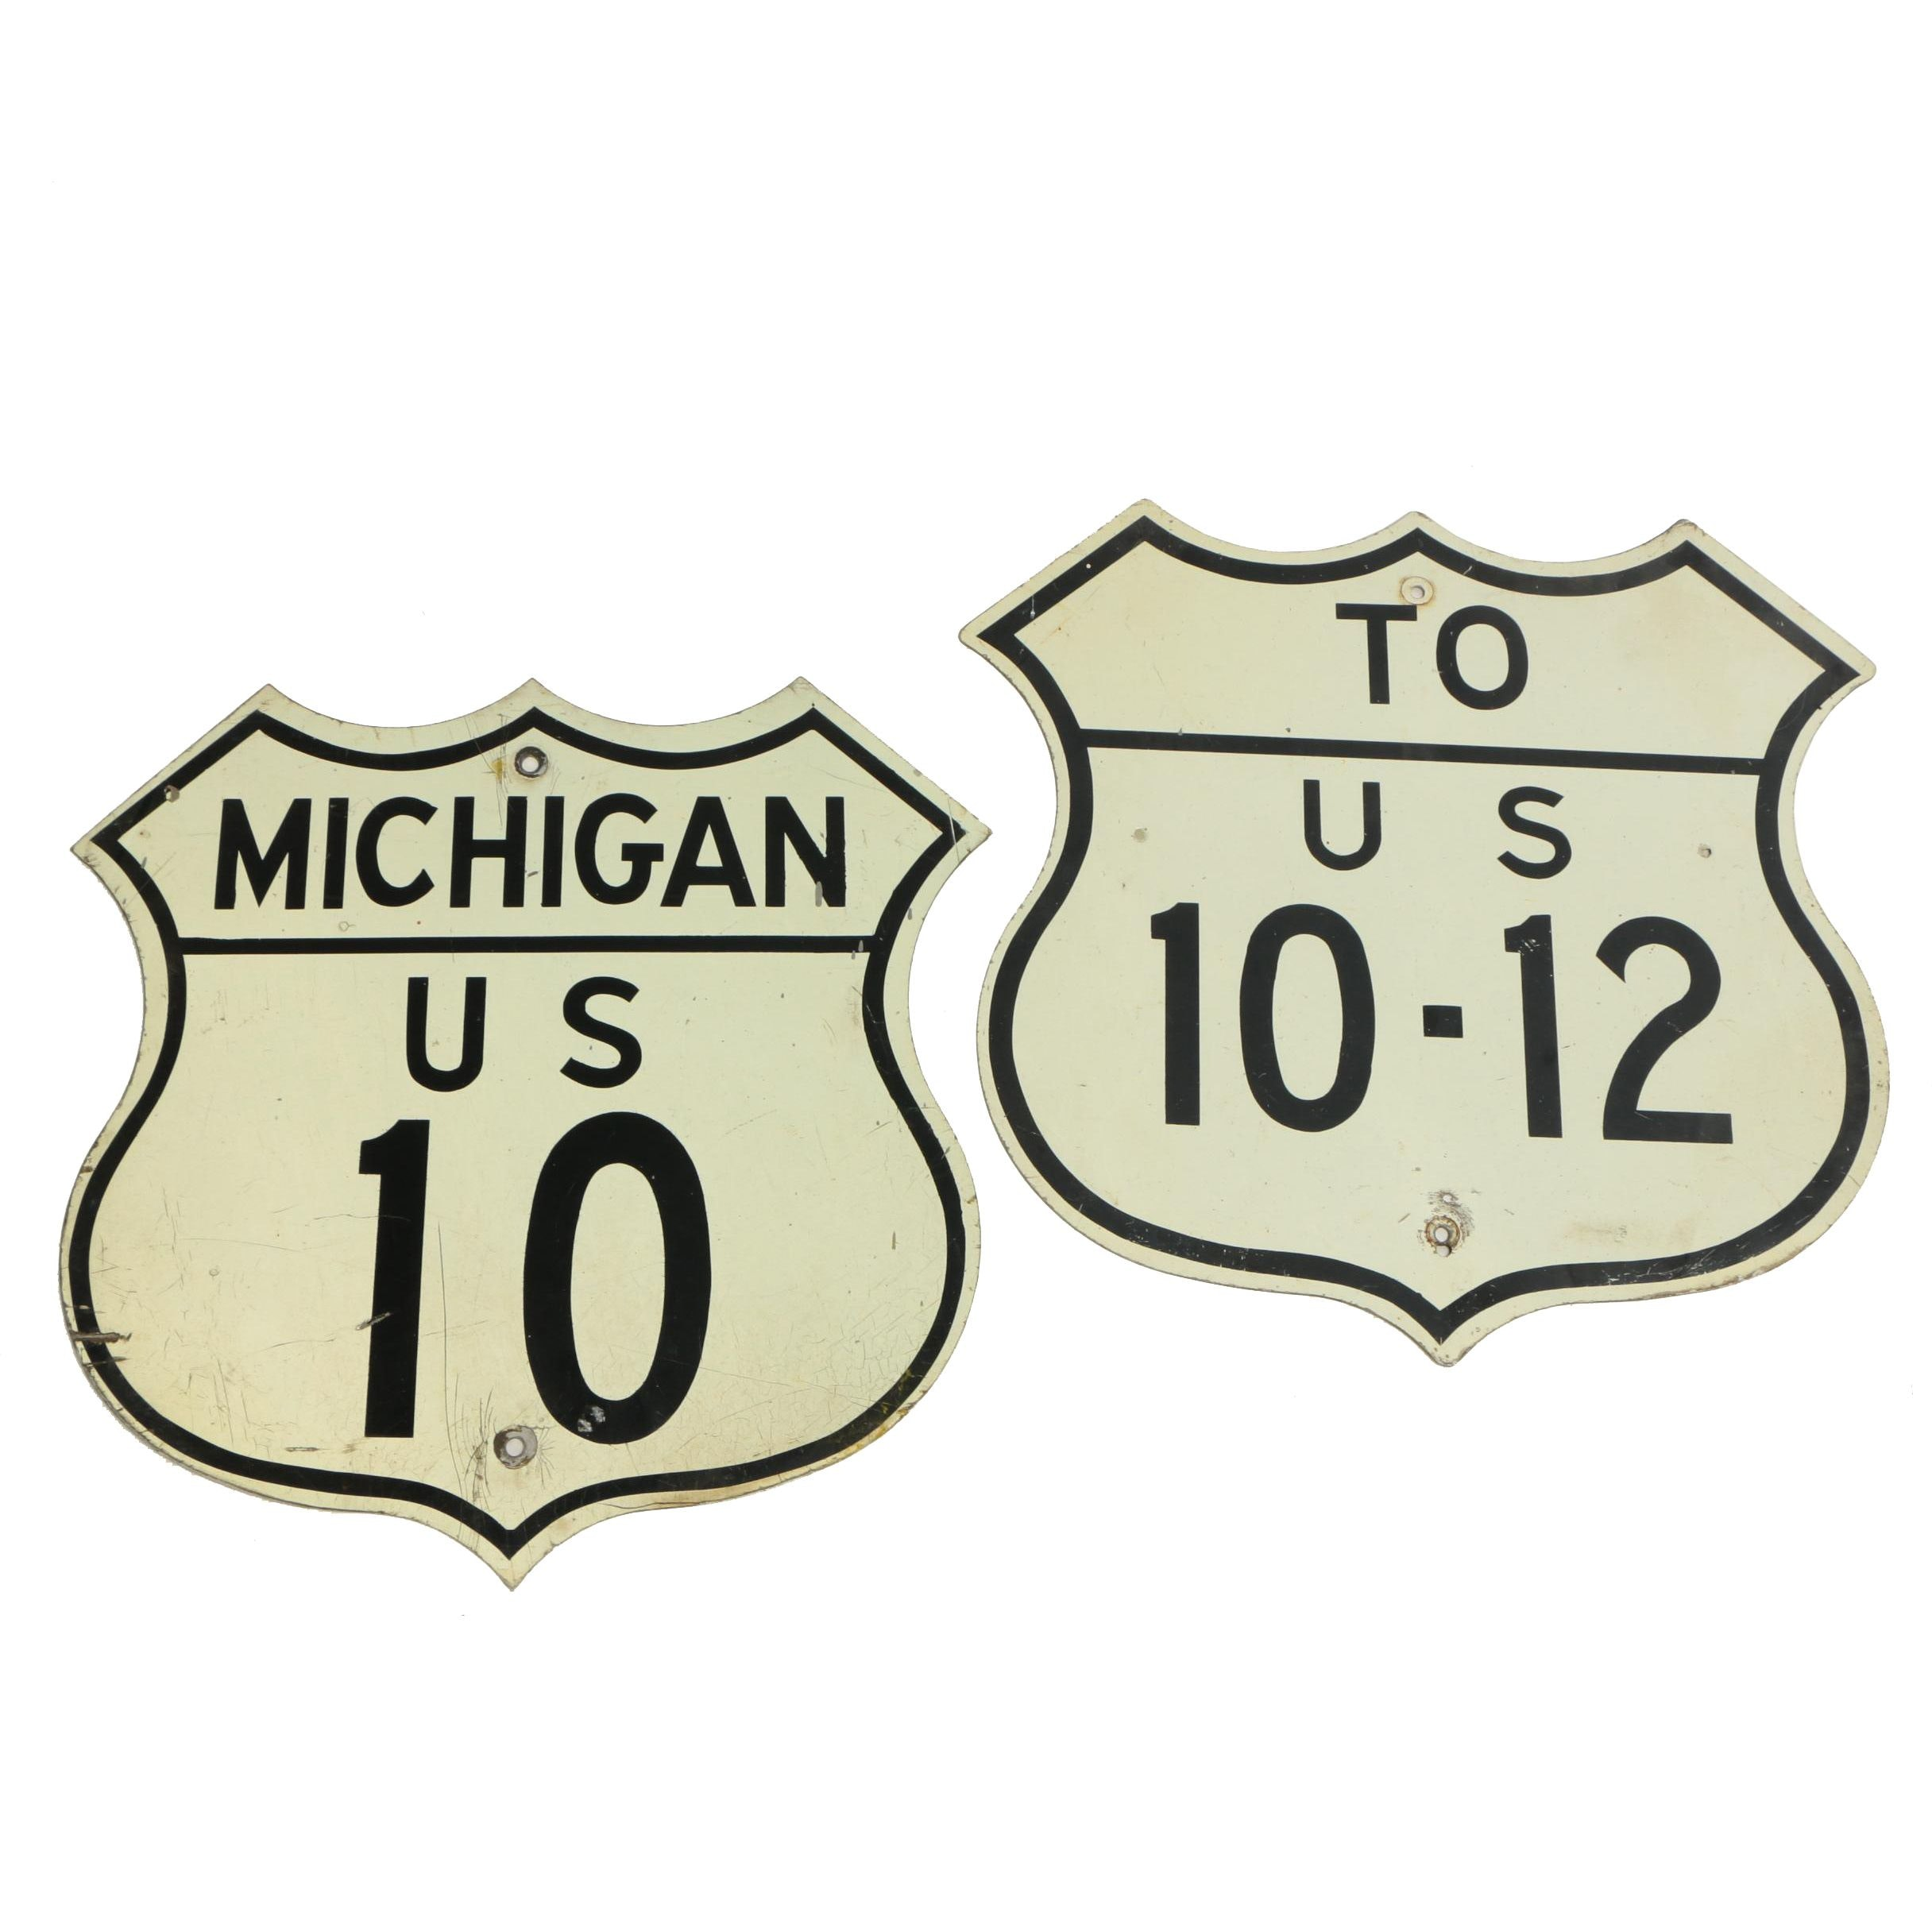 Michigan U. S. Route 10 and 12 Enameled Metal Road Signs, 20th Century